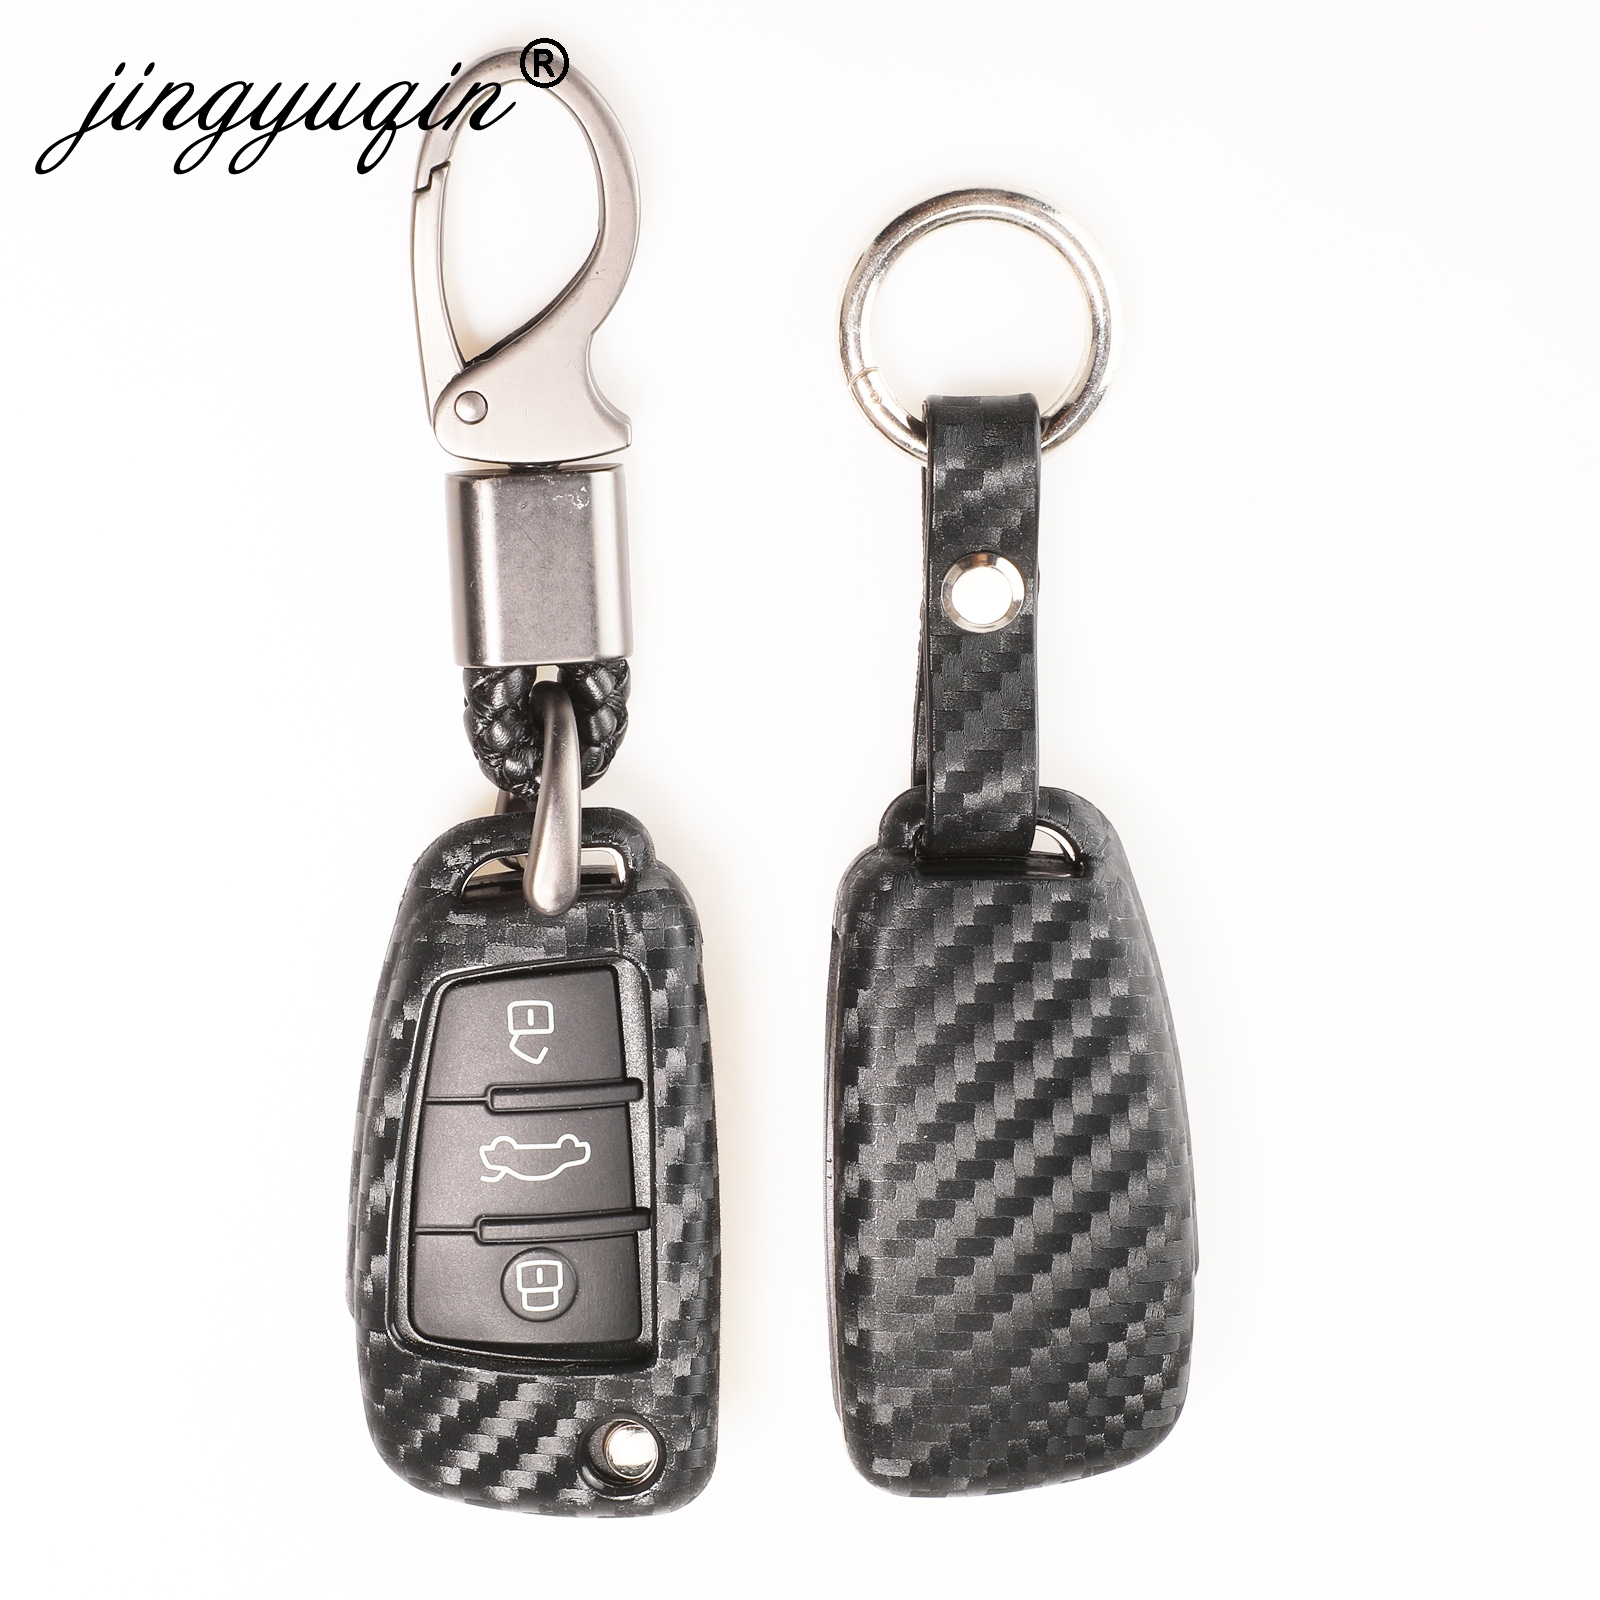 jingyuqin 10X 3 Button Soft Carbon Silicone Car <font><b>Remote</b></font> <font><b>Key</b></font> Fob Cover Case For <font><b>Audi</b></font> A3 8L 8P A4 B6 B7 B8 <font><b>A6</b></font> <font><b>C5</b></font> C6 4F RS3 Q3 Q7 TT image